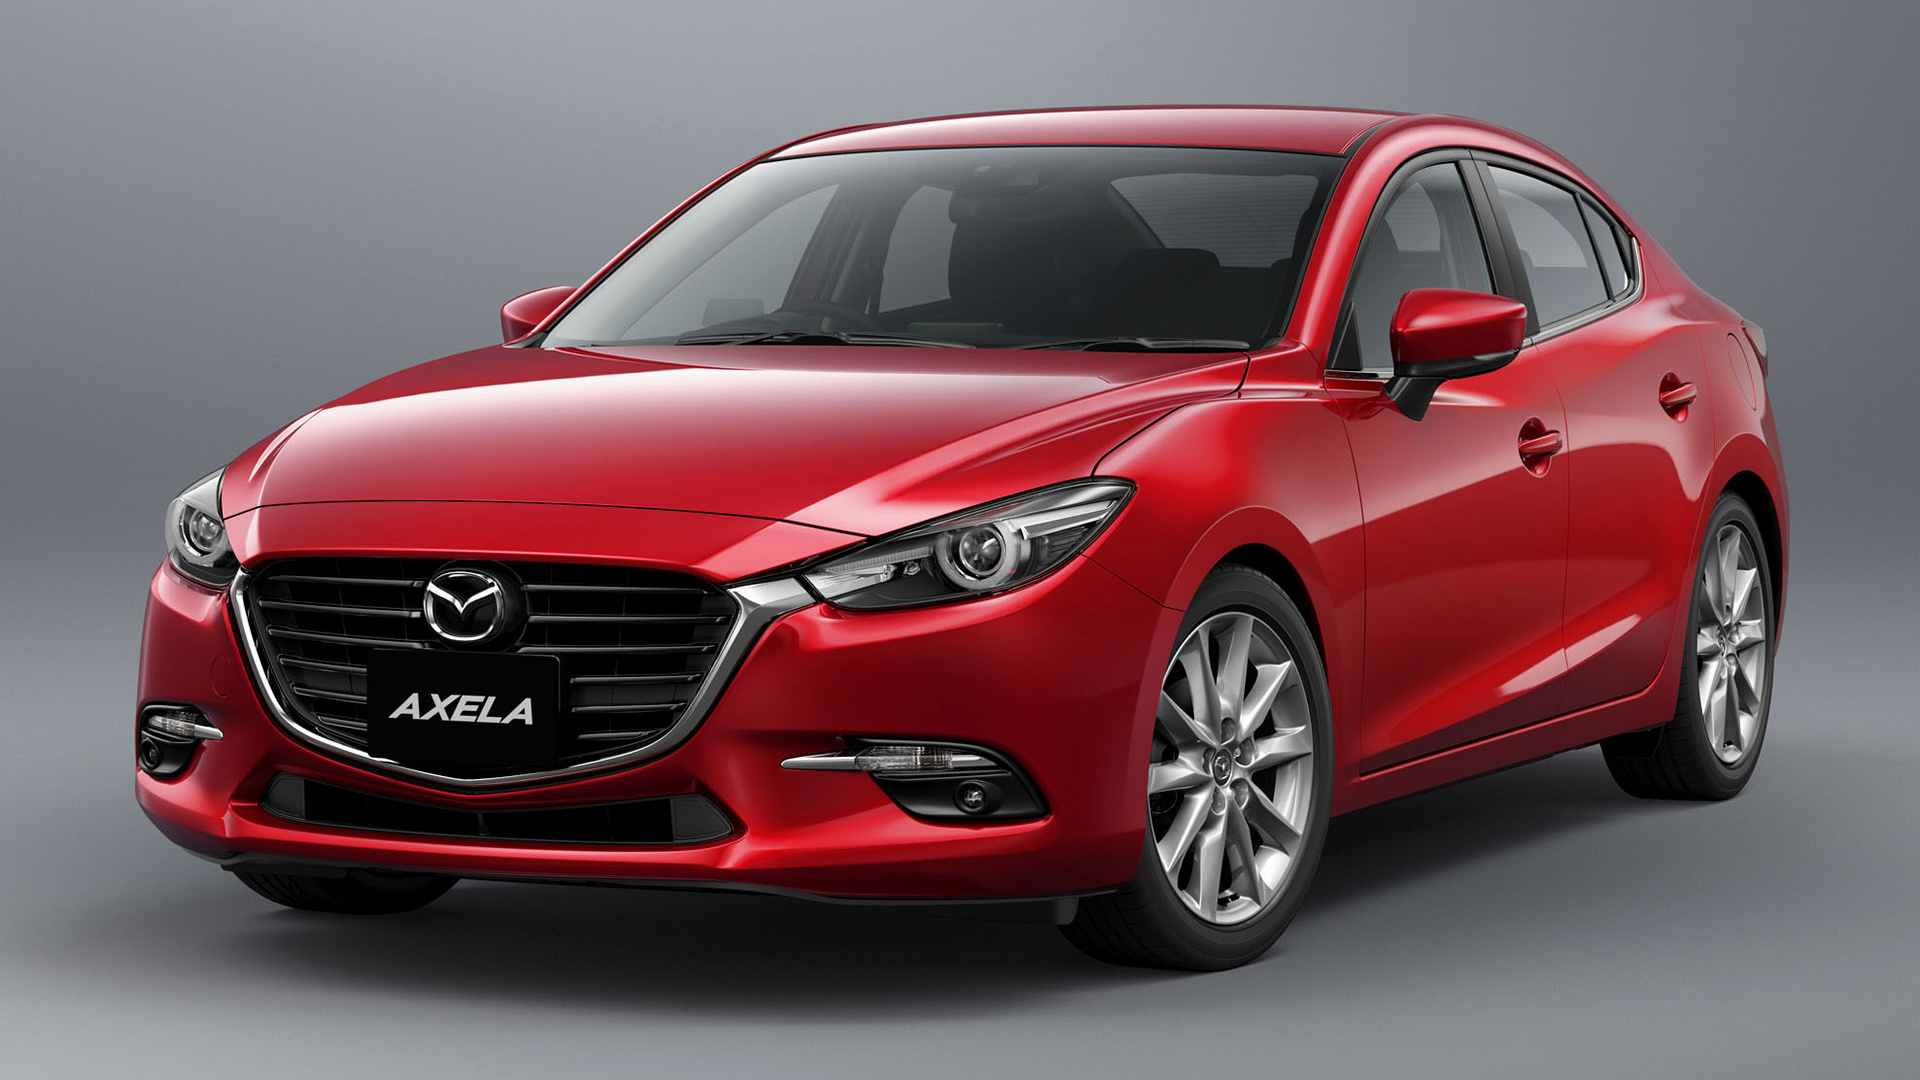 Mercedes Fort Myers >> Mazda Axela Sedan (2016) Wallpapers and HD Images - Car Pixel